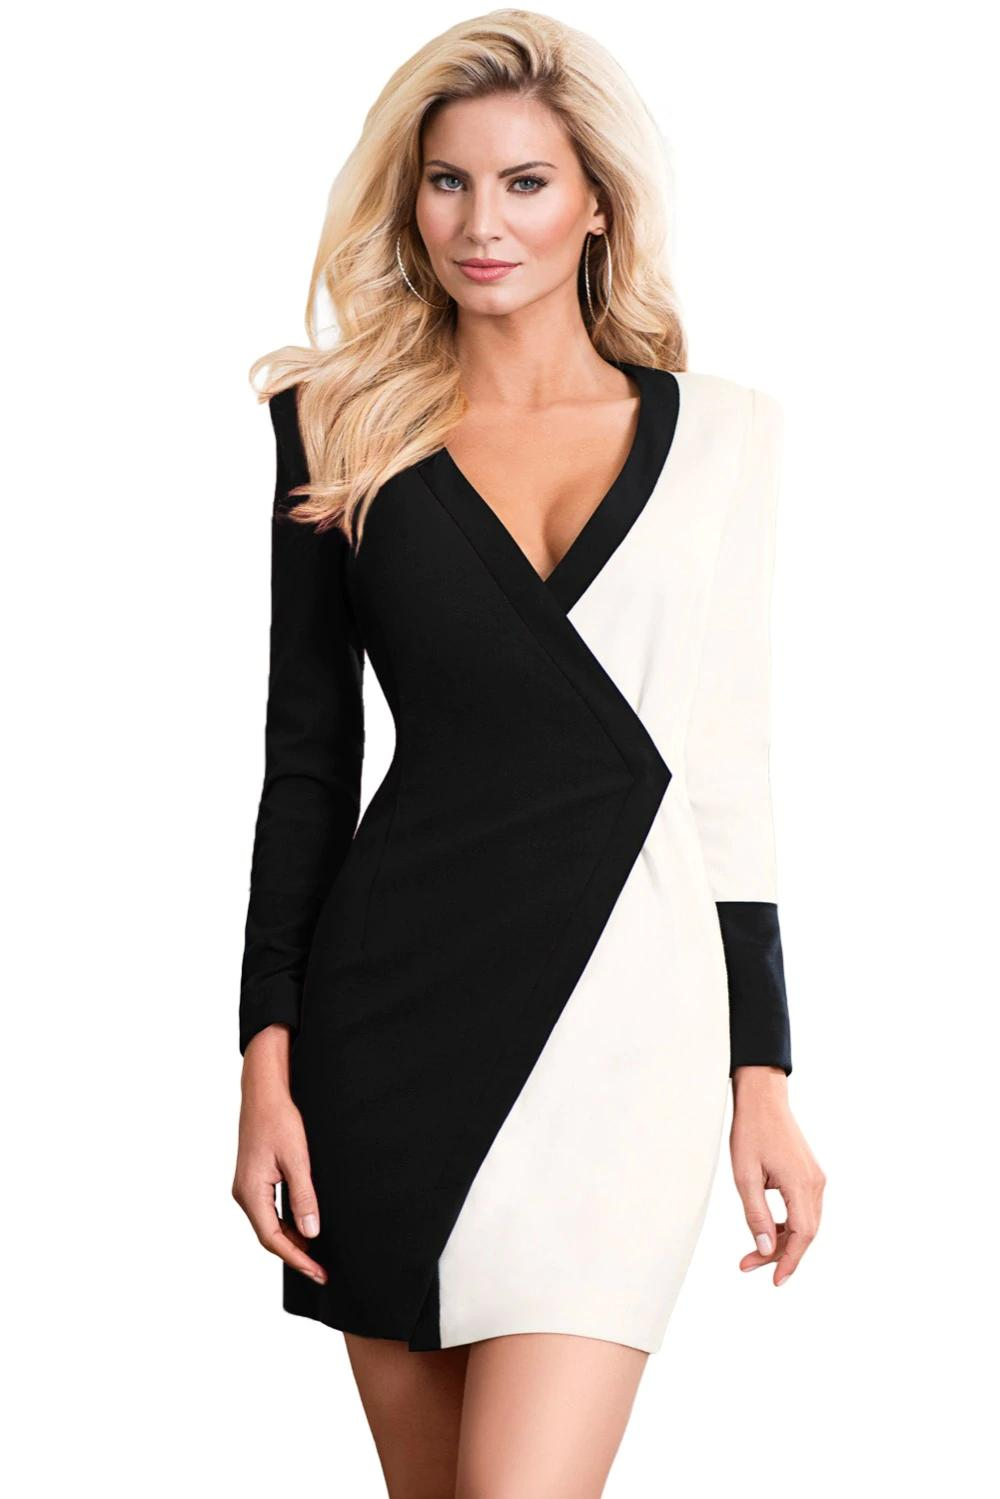 0ac1e3de97 New Long Sleeve 2018 Sexy Autumn V Neck Black White Color Block Faux Wrap  Mini Party Bodycon Dress Vestido Mujer Lc220478 Red Carpet Dresses Black  Prom ...